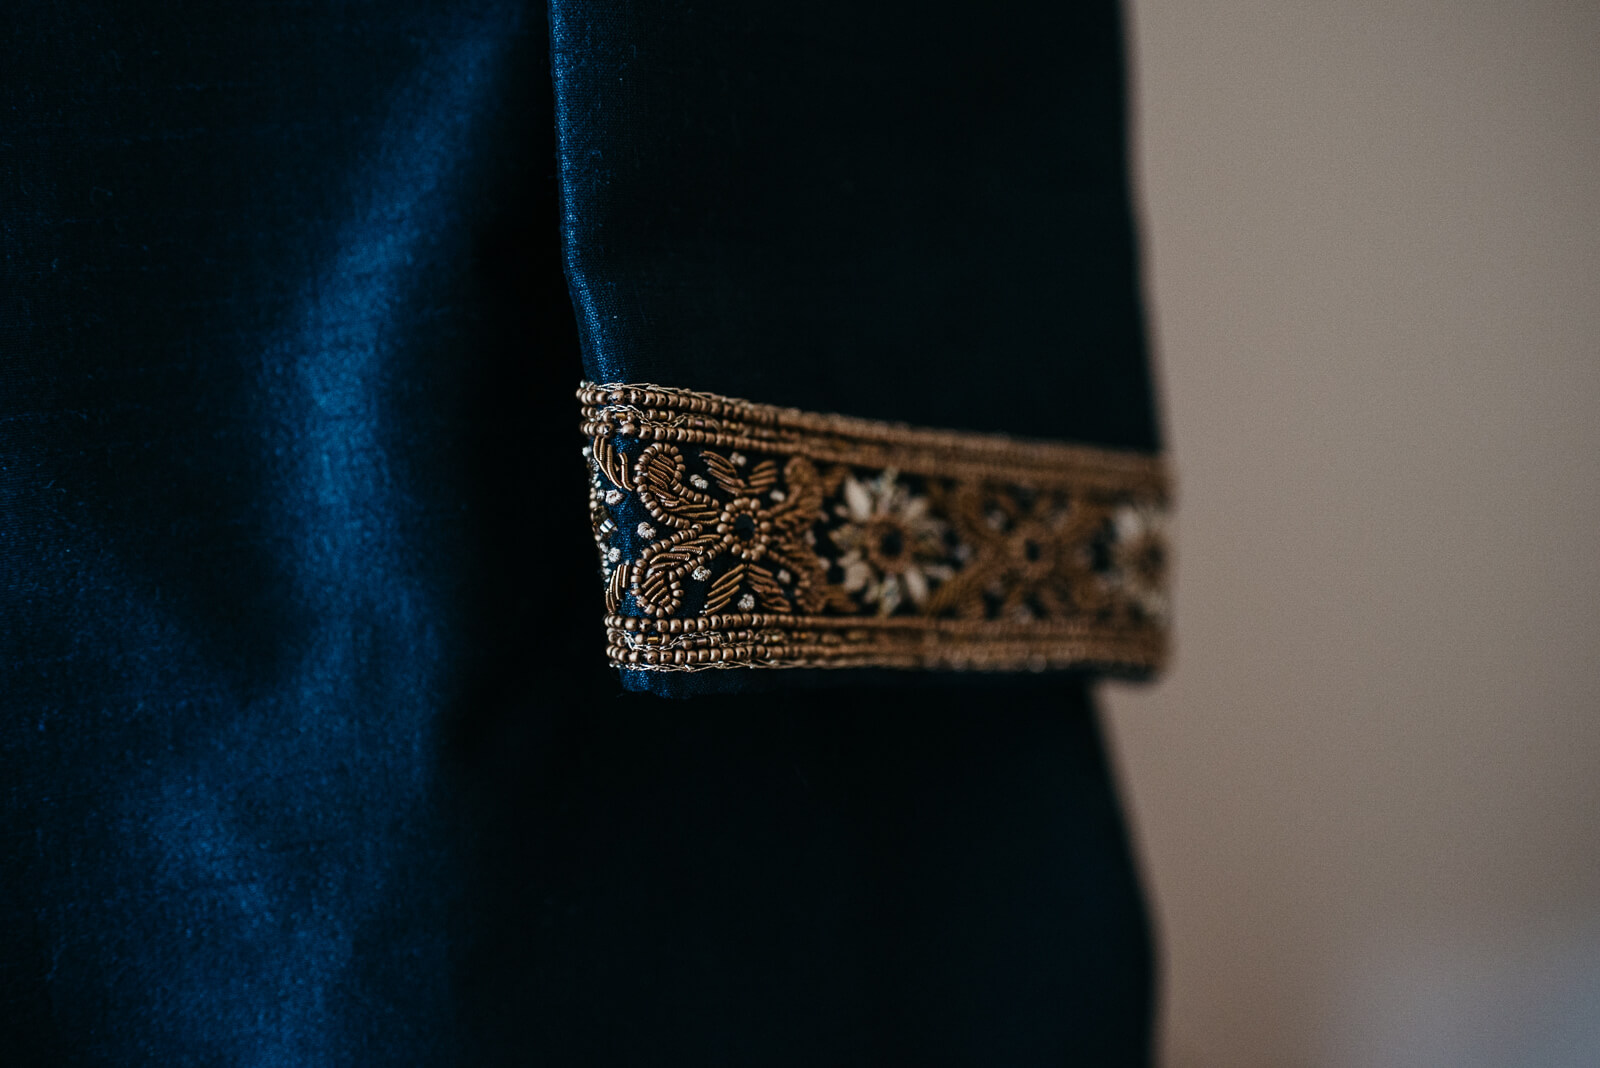 Cuff details of grooms navy silk wedding suit